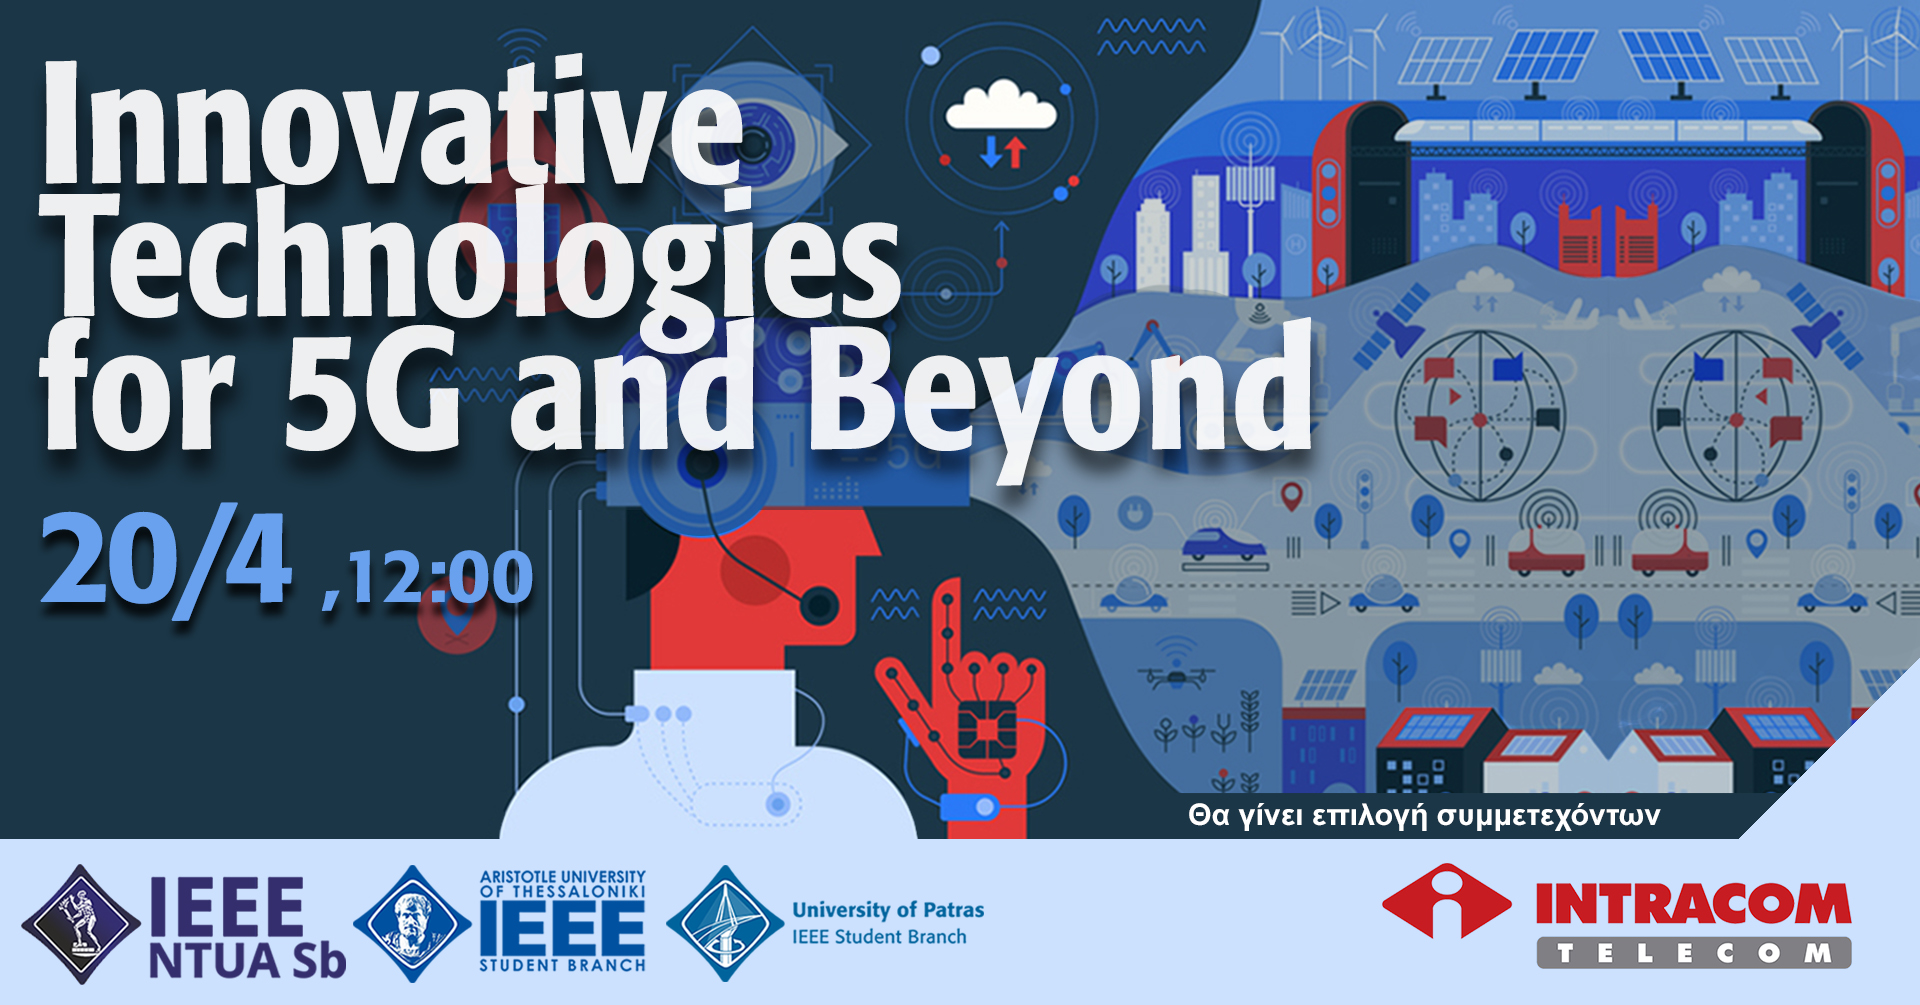 Innovative Technologies for 5G and beyond